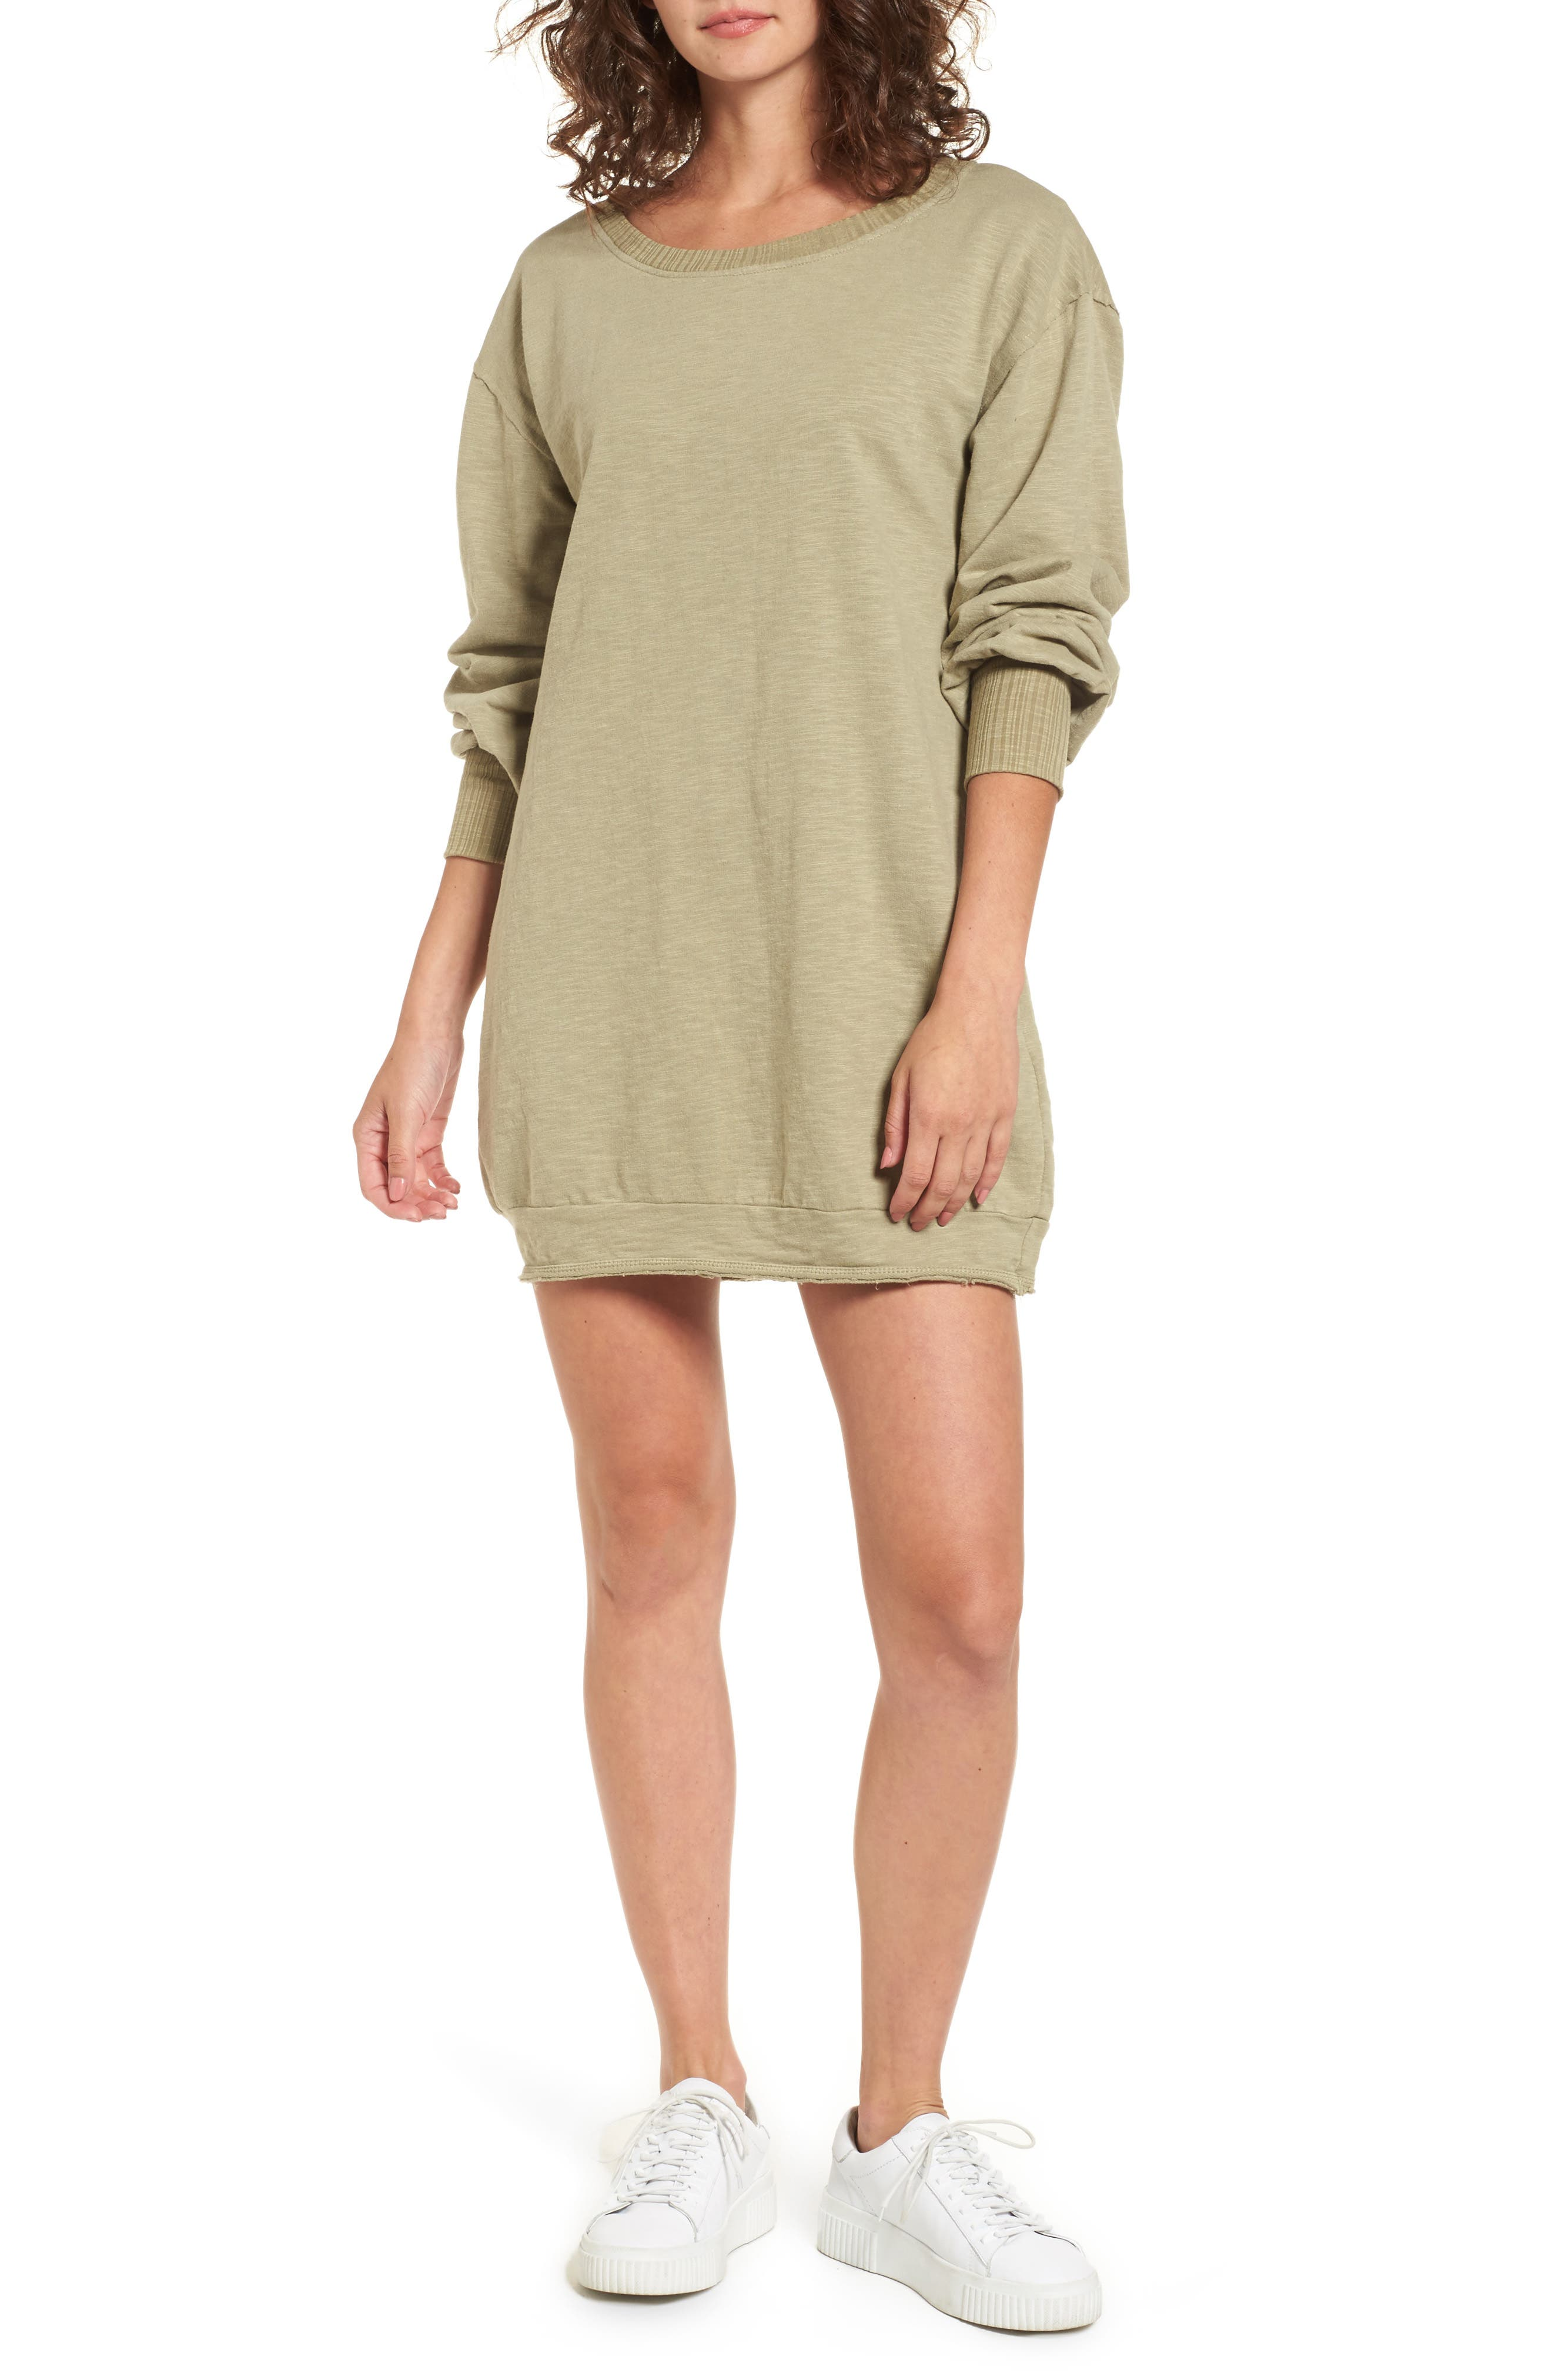 Mountains Fade Sweatshirt Dress,                         Main,                         color, Sage